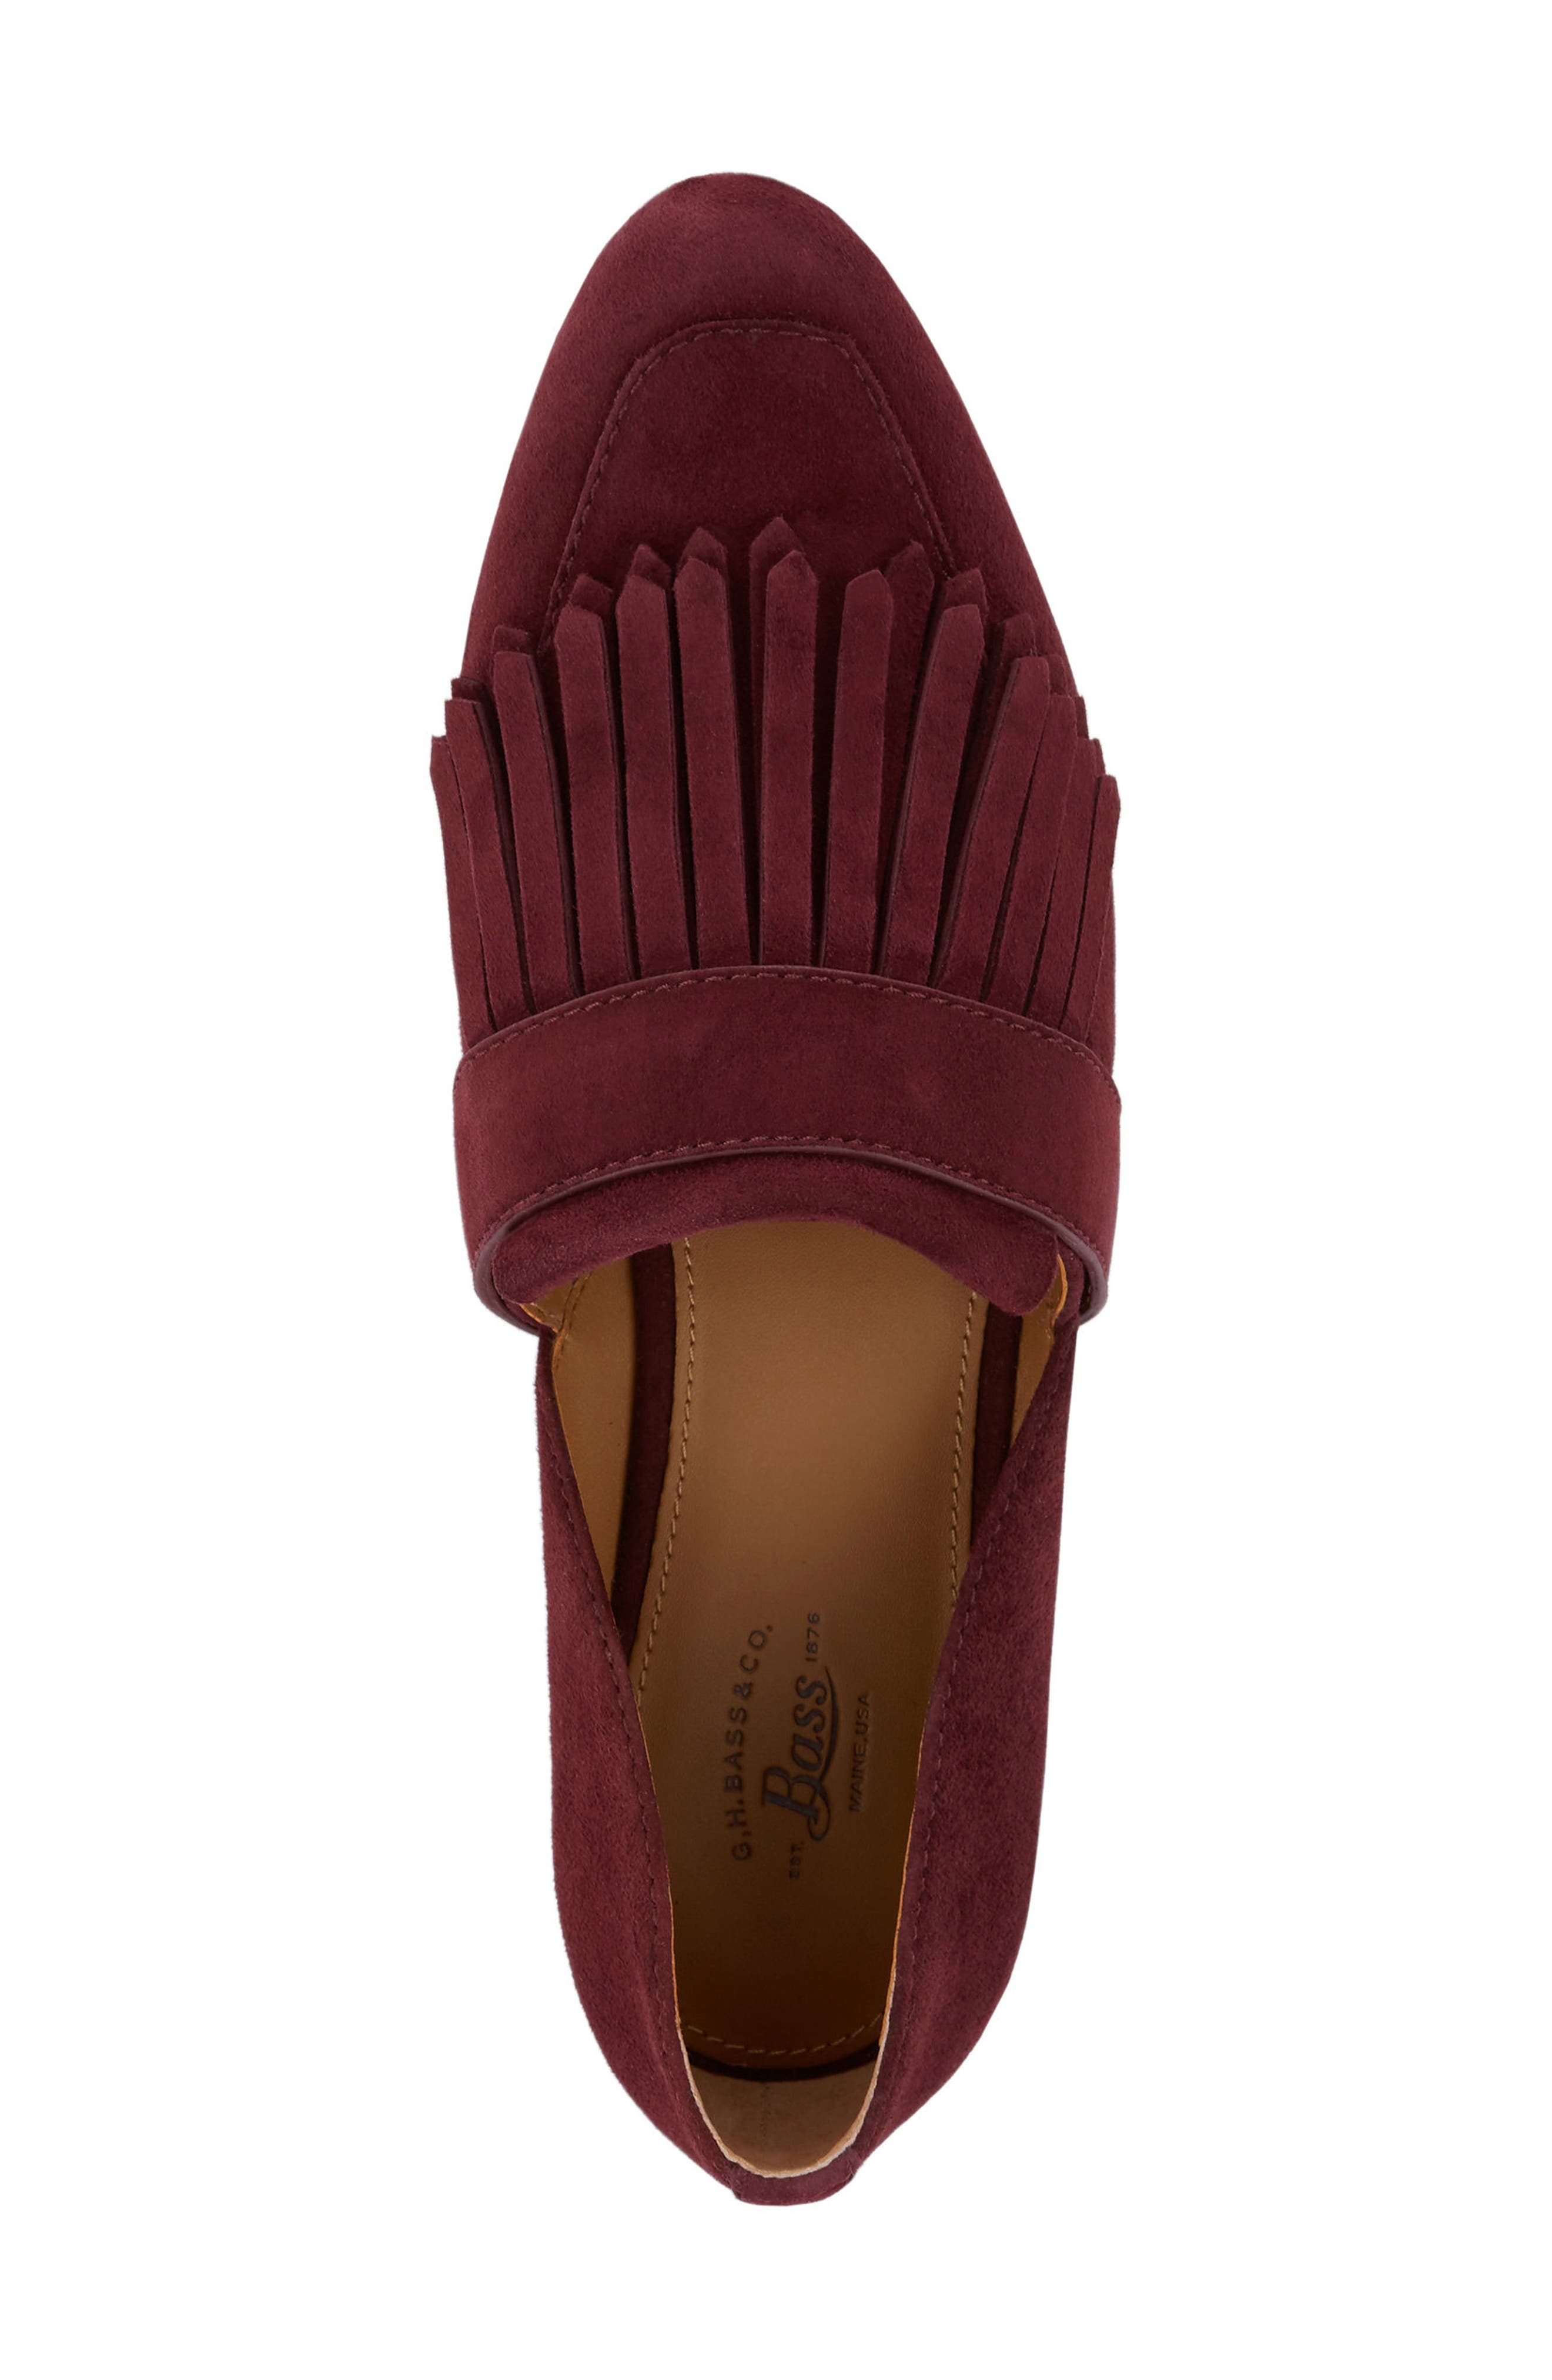 'Harlow' Kiltie Leather Loafer,                             Alternate thumbnail 5, color,                             Wine Suede